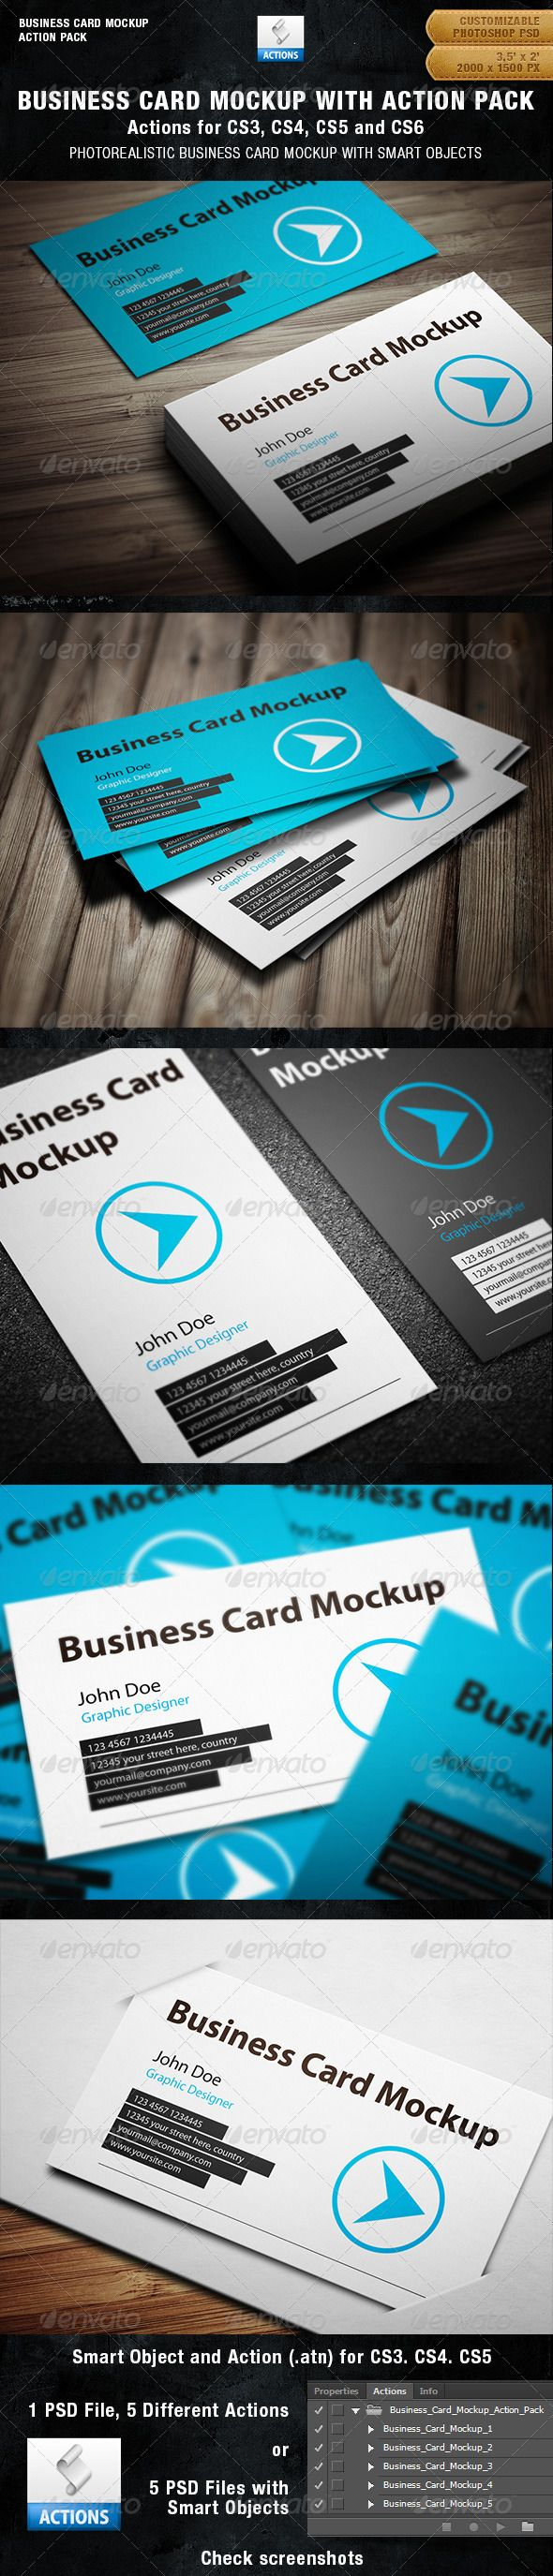 Business card mockup with actions pack pinterest mockup business card mockup with actions pack download here httpsgraphicriveritembusiness card mockup with actions pack1554763refklitvogli reheart Image collections